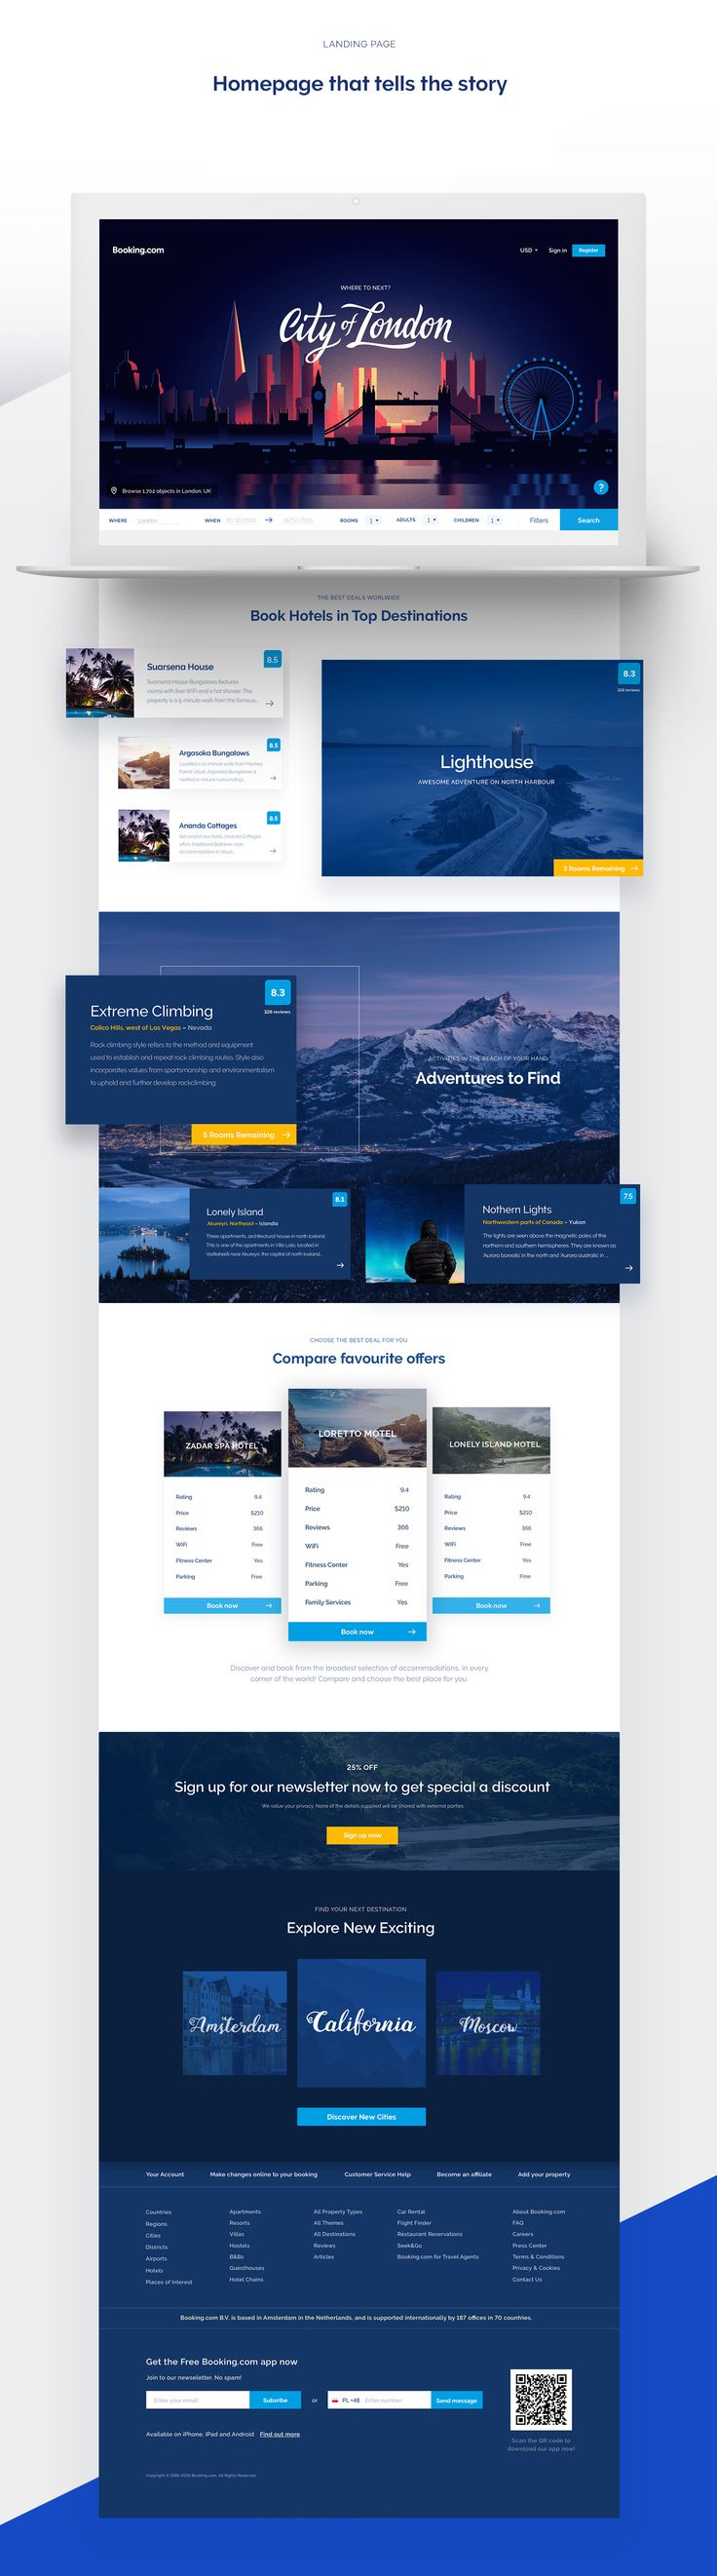 Booking.com Design Concept. If you like UX, design, or design thinking, check out theuxblog.com podcast https://itunes.apple.com/us/podcast/ux-blog-user-experience-design/id1127946001?mt=2